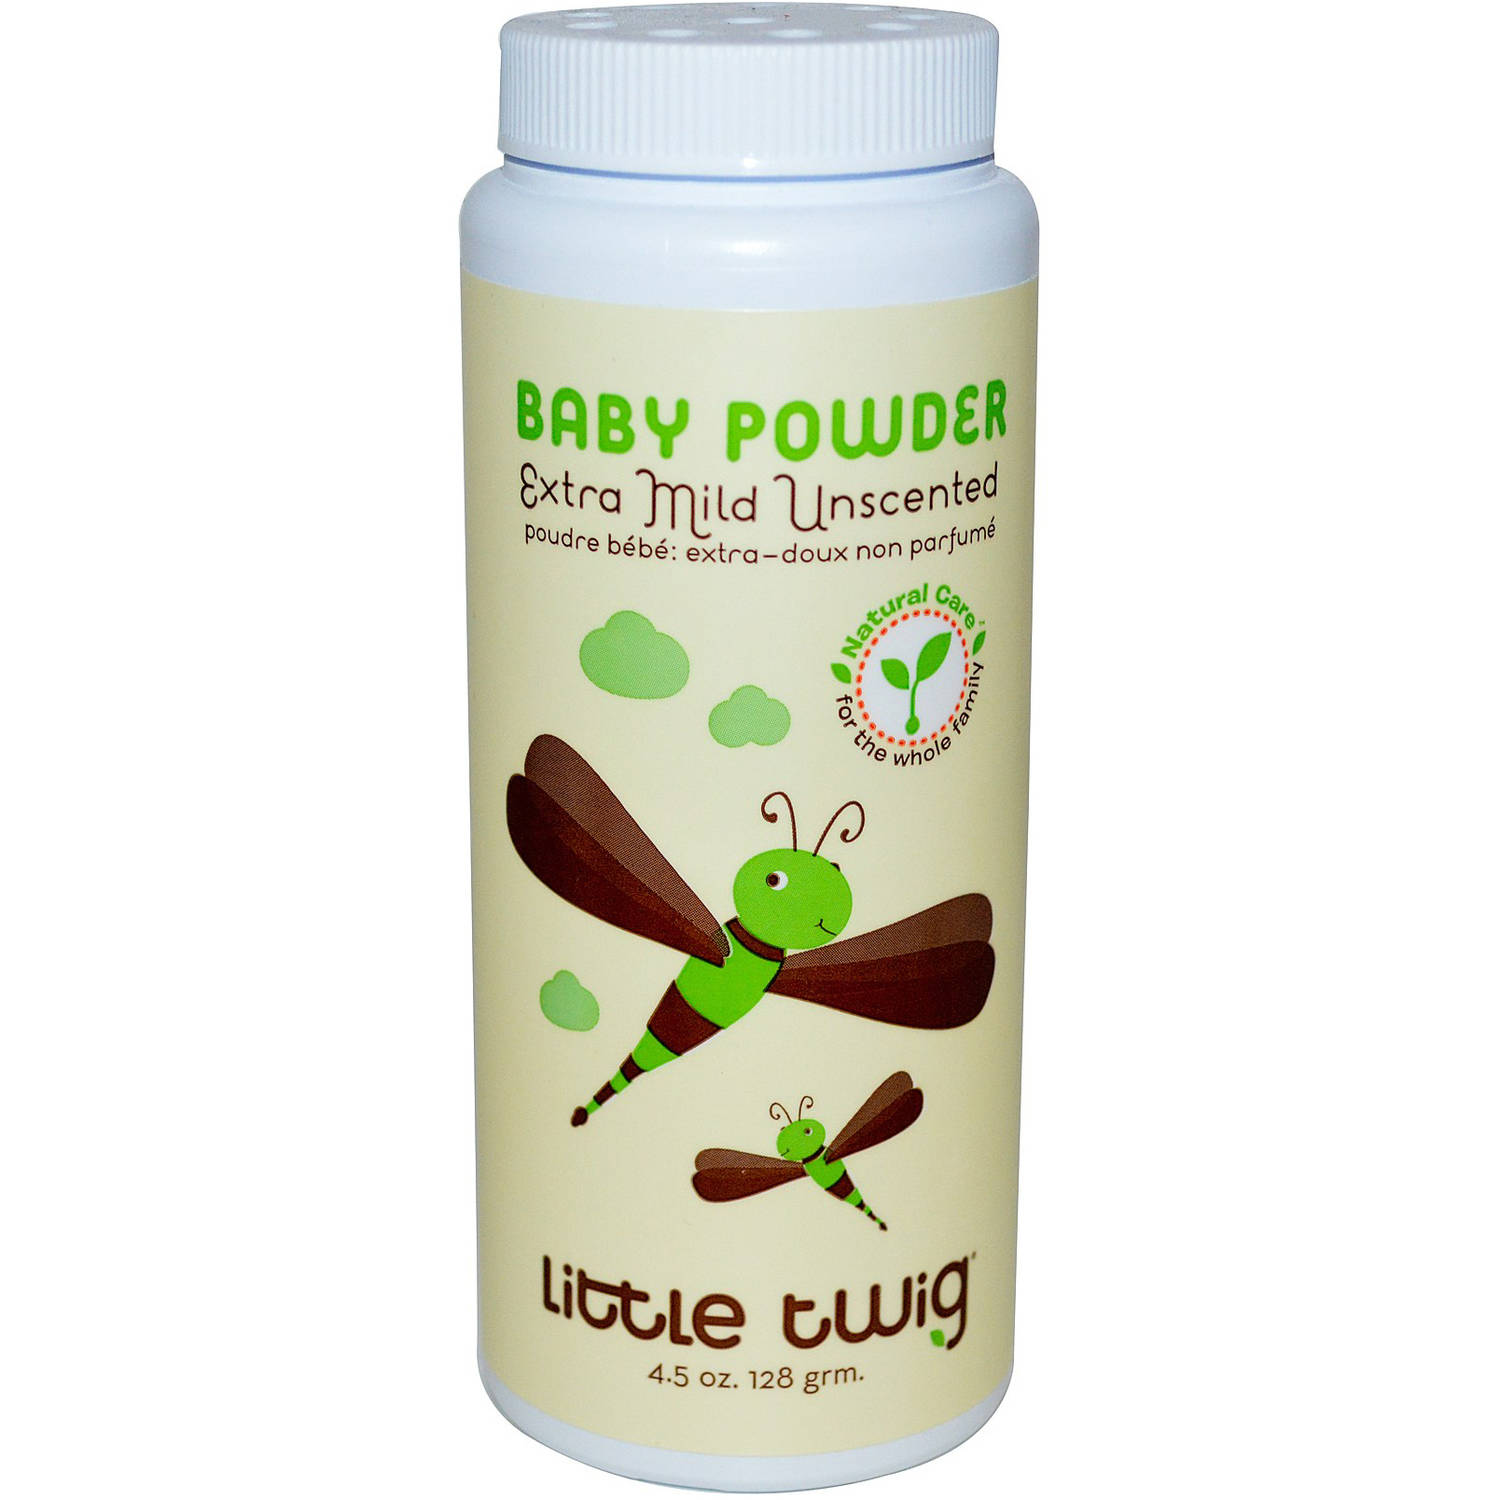 Little Twig Extra Mild Unscented Baby Powder, 4.5 oz by